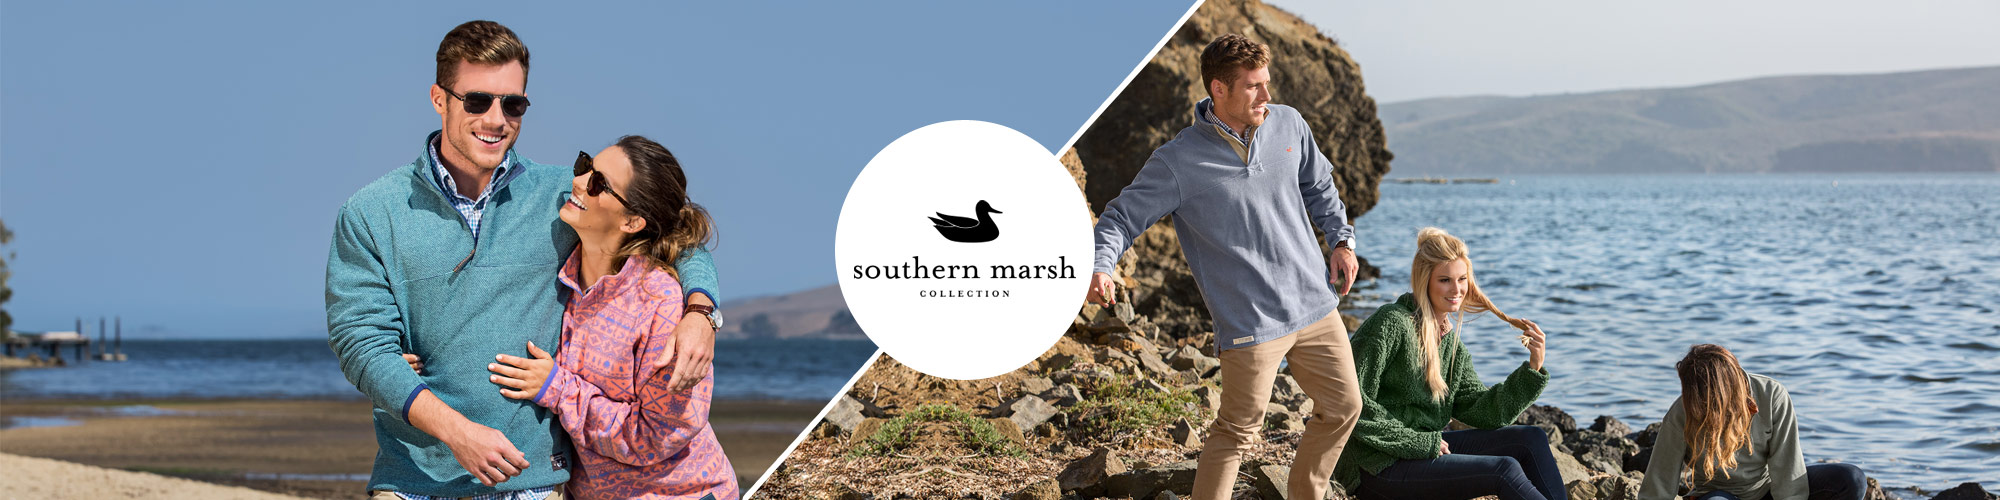 mens and womens southern marsh clothing